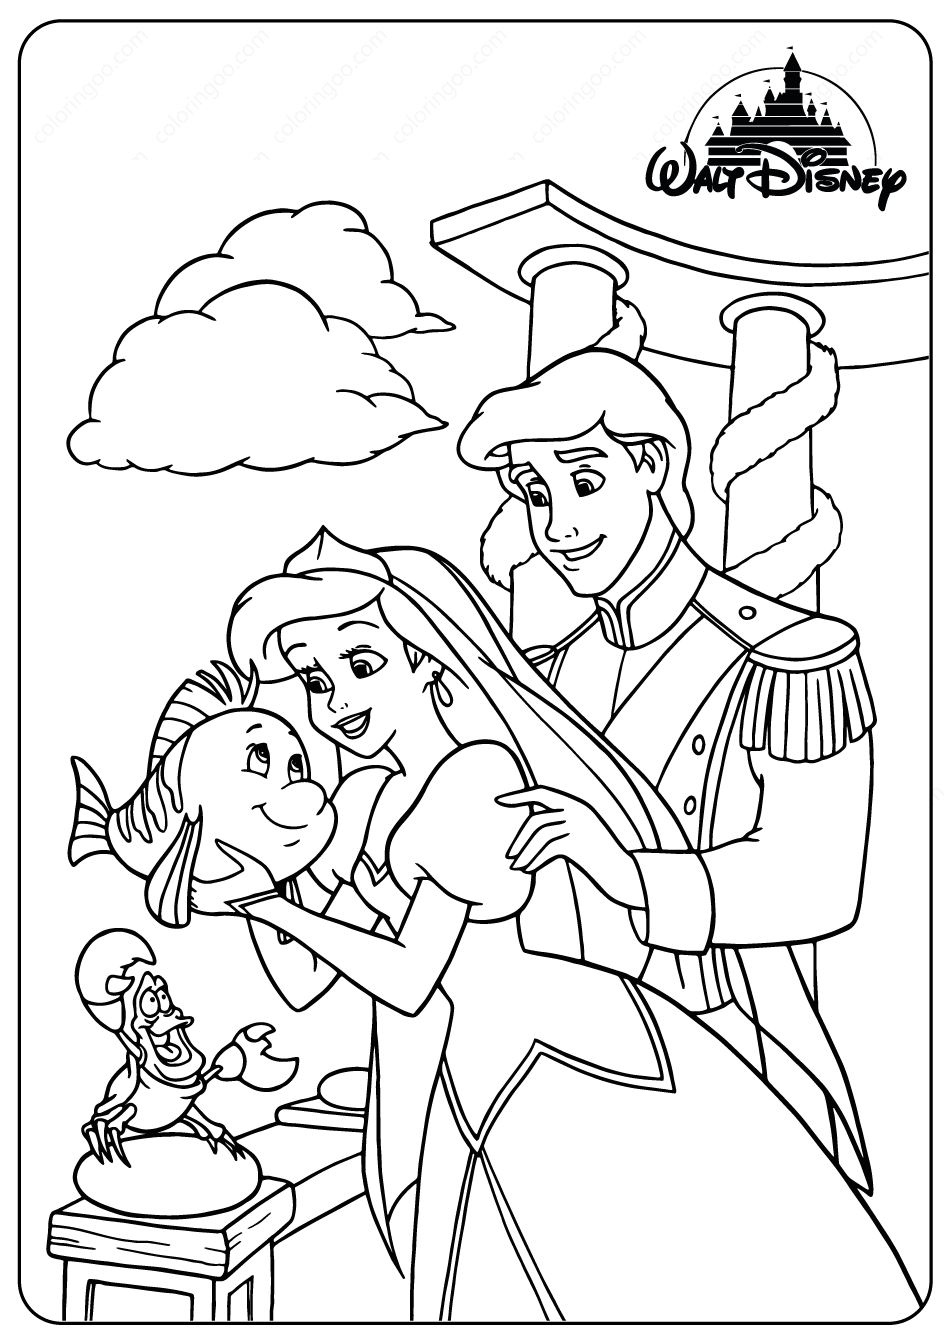 Printable Ariel and Prince Eric Coloring Pages